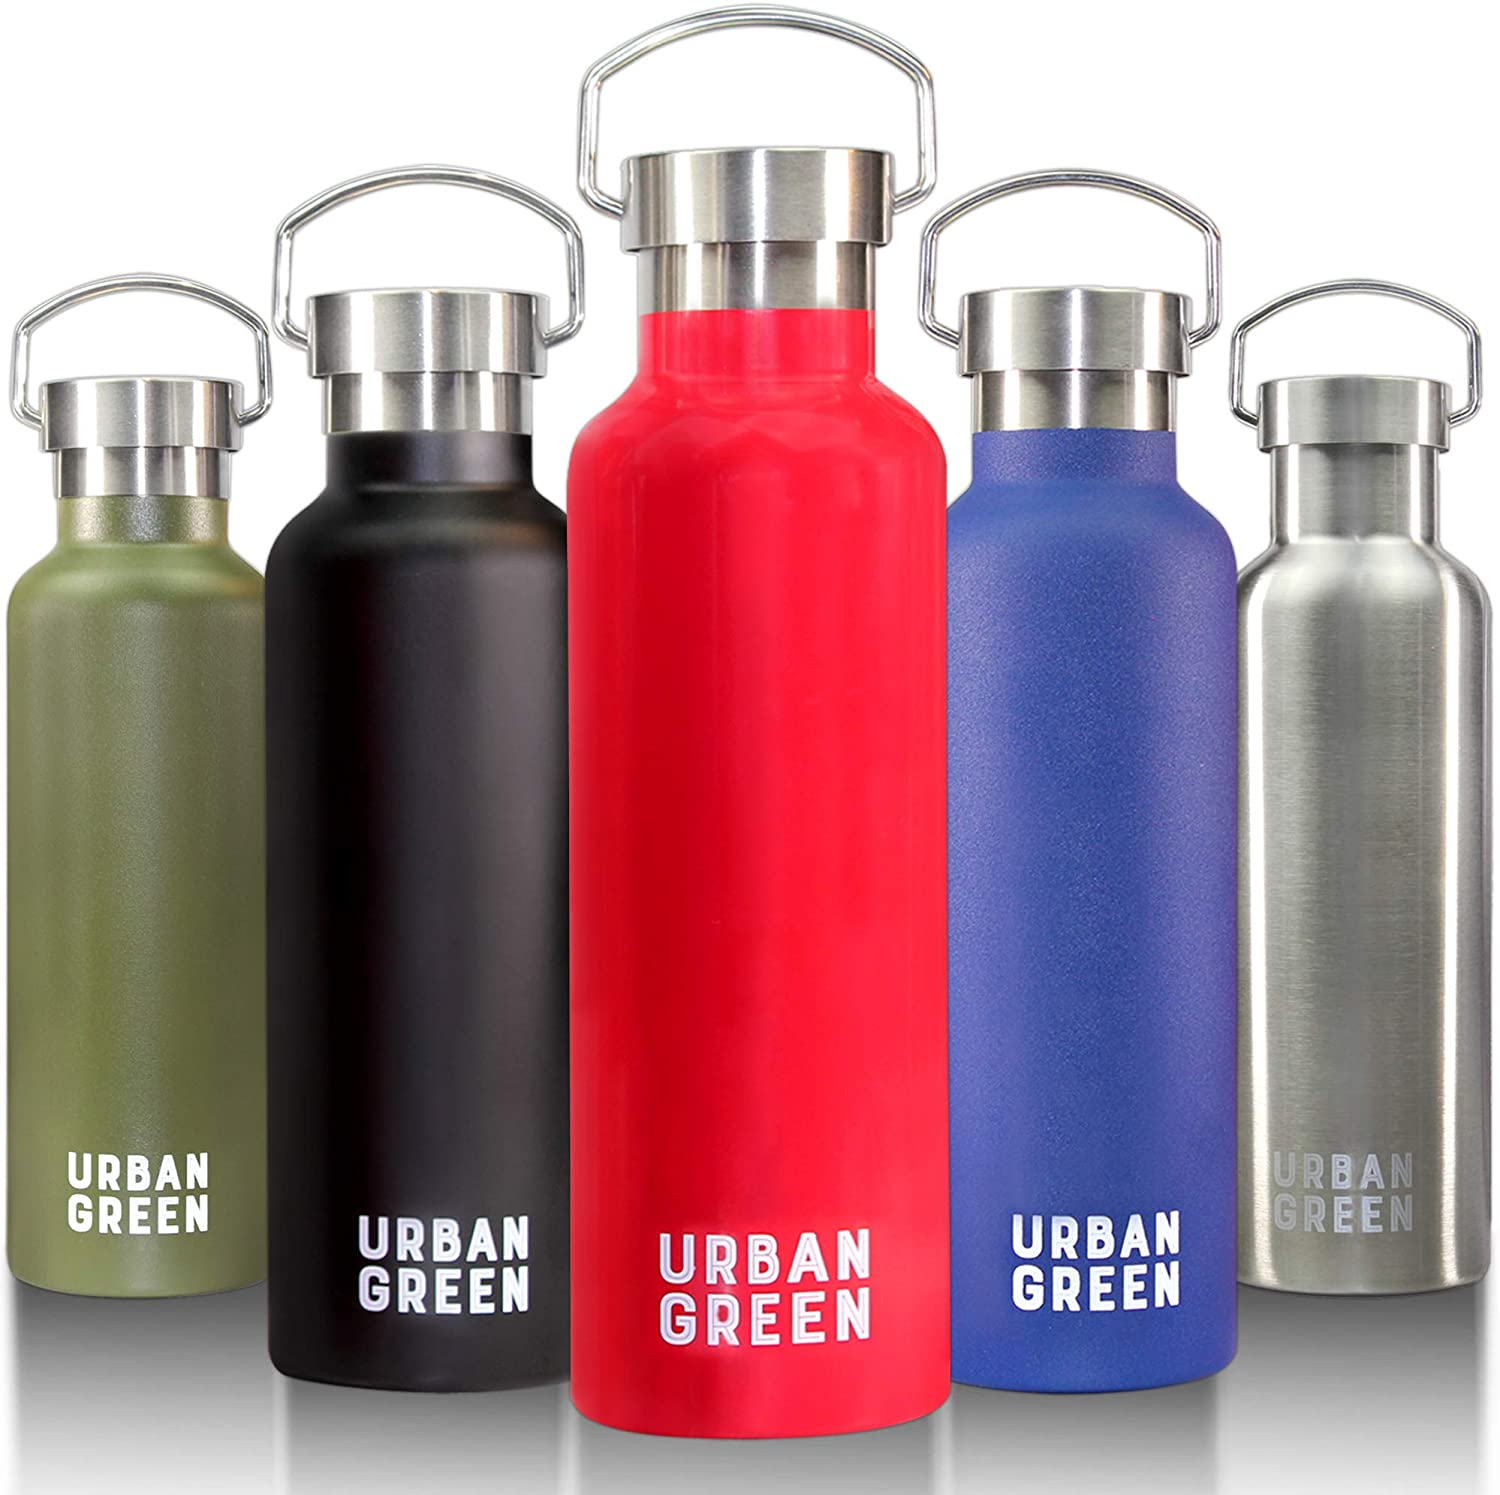 Stainless Steel Water Bottle 25OZ Urban Green, Vacuum Insulated Water Bottle, 18/8 Double Wall Sports Water Bottle, Wide Mouth, Powder Coated, Mother's Day Gift (Coral Red)